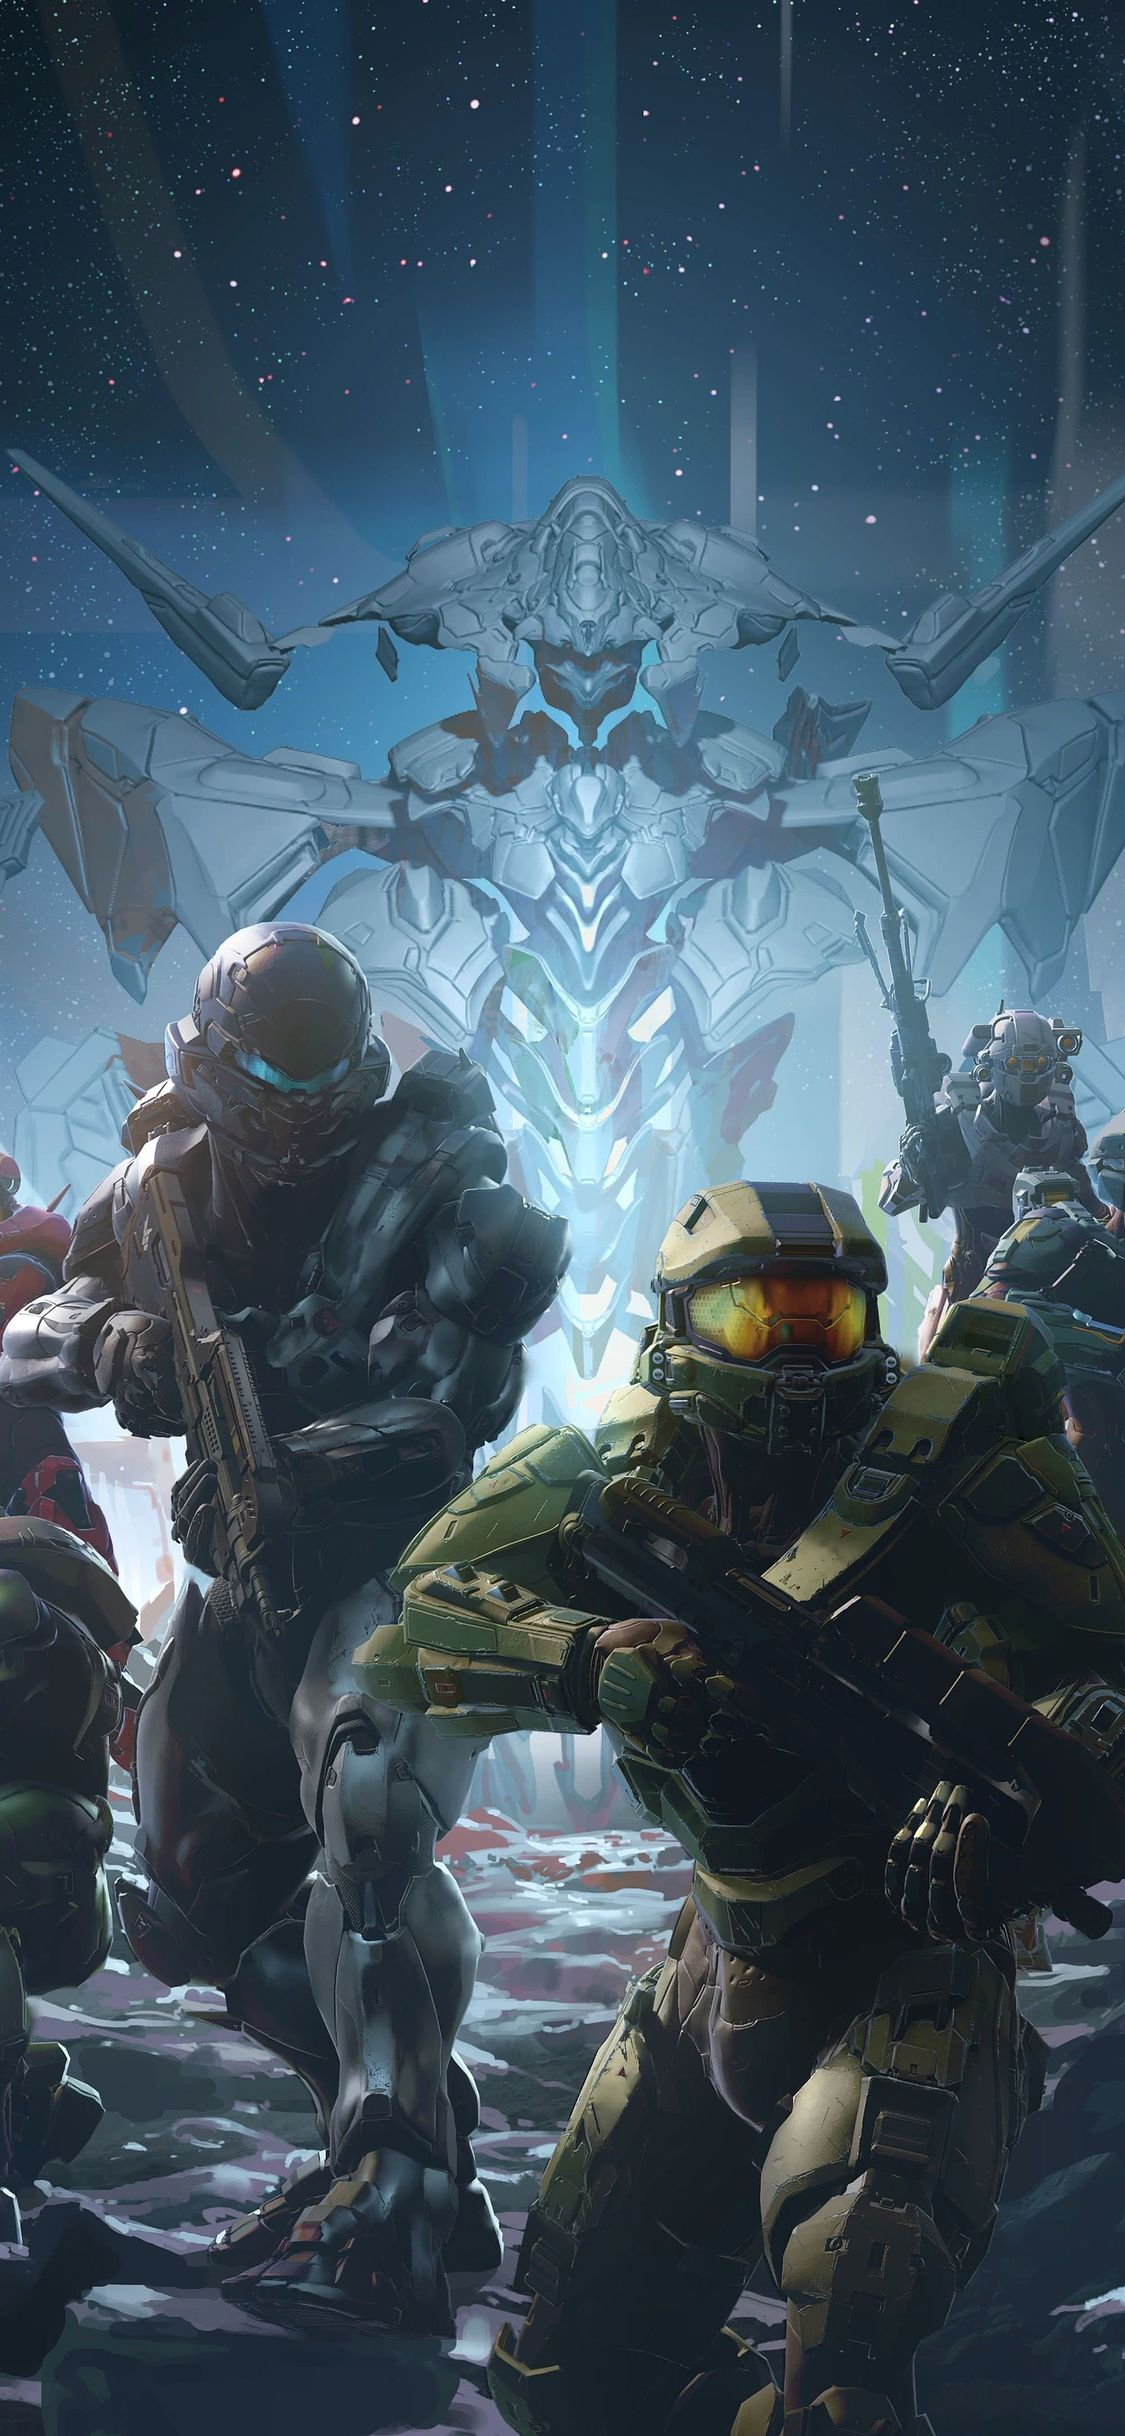 Halo Reach Wallpaper 4k : reach, wallpaper, Reach, Iphone, Wallpaper, KoLPaPer, Awesome, Wallpapers